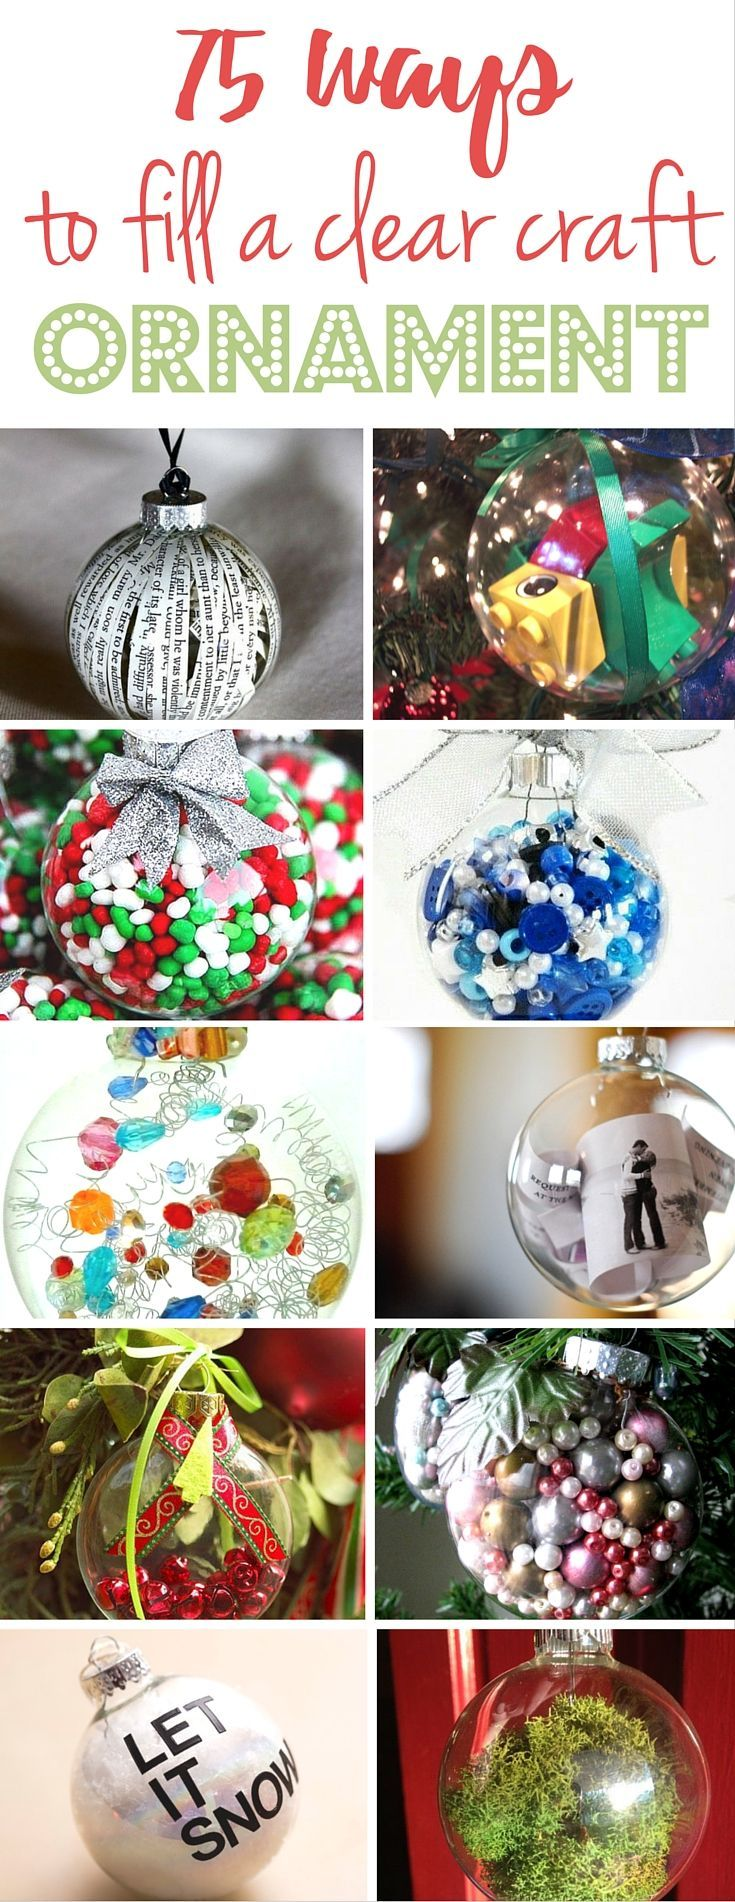 Clear christmas bulbs for crafting - 75 Ways To Fill A Clear Craft Ornament And Make A Homemade Christmas Ornament Christmas